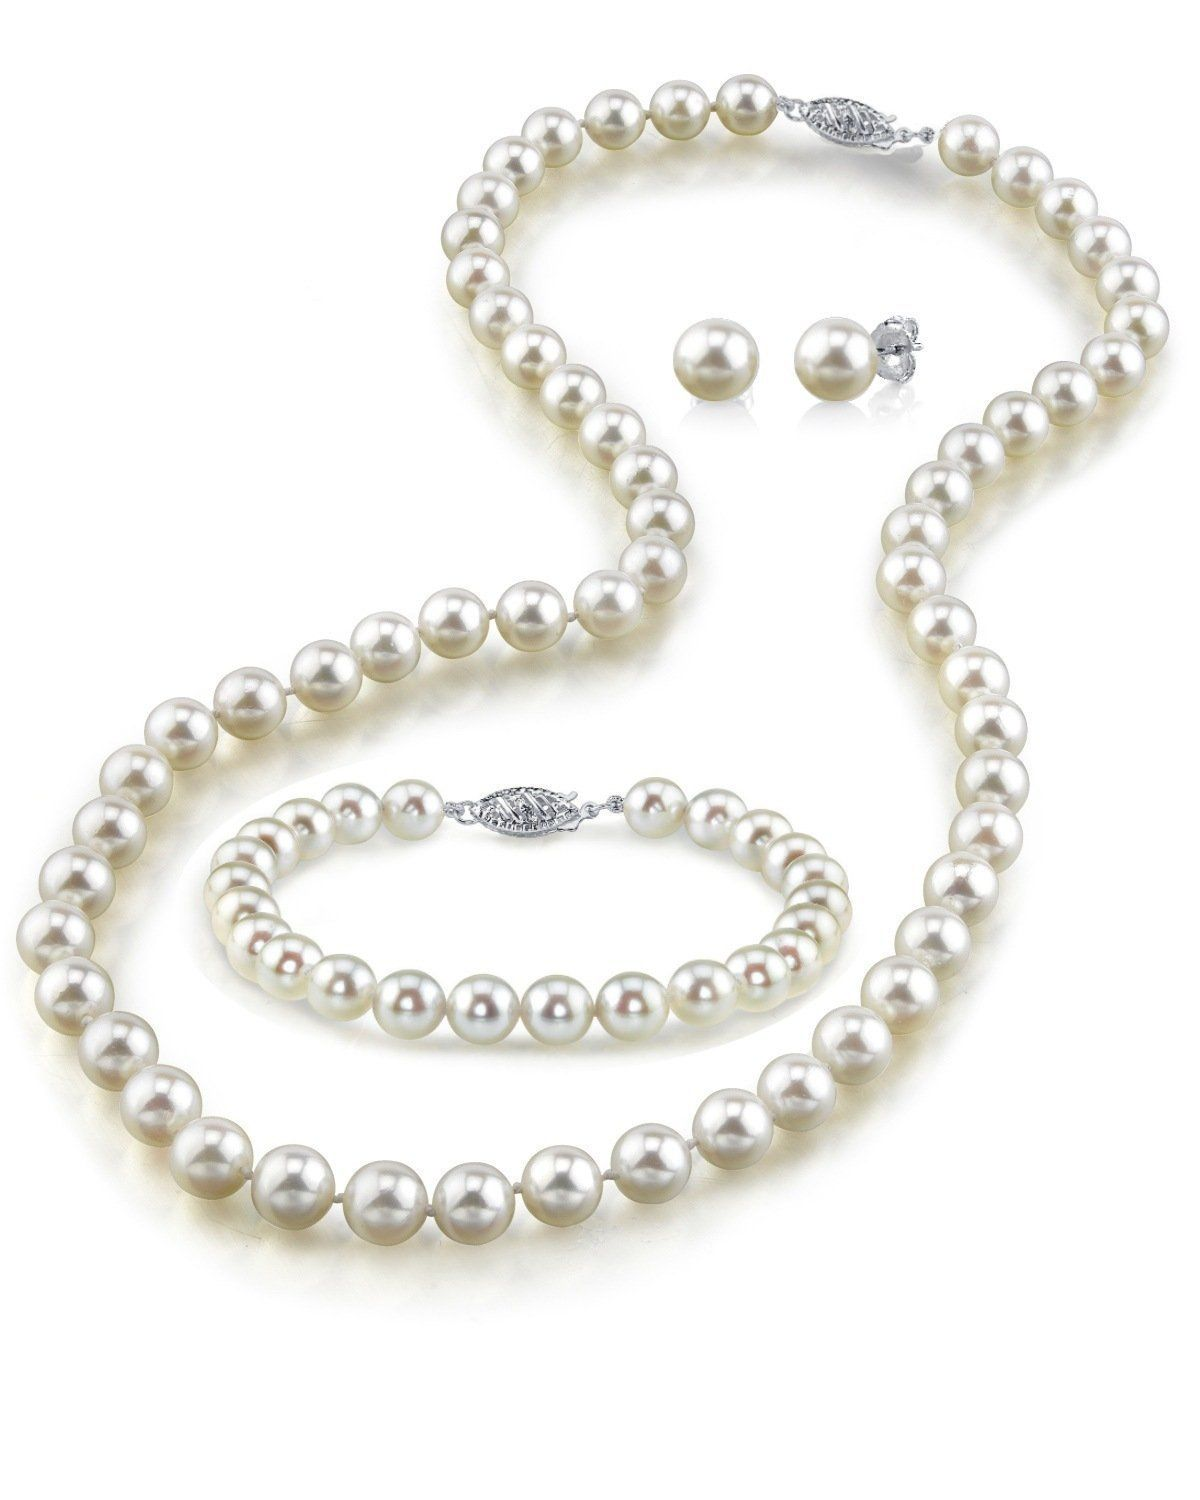 14k Gold 78mm White Freshwater Cultured Pearl Necklace, Bracelet And  Earrings Set,